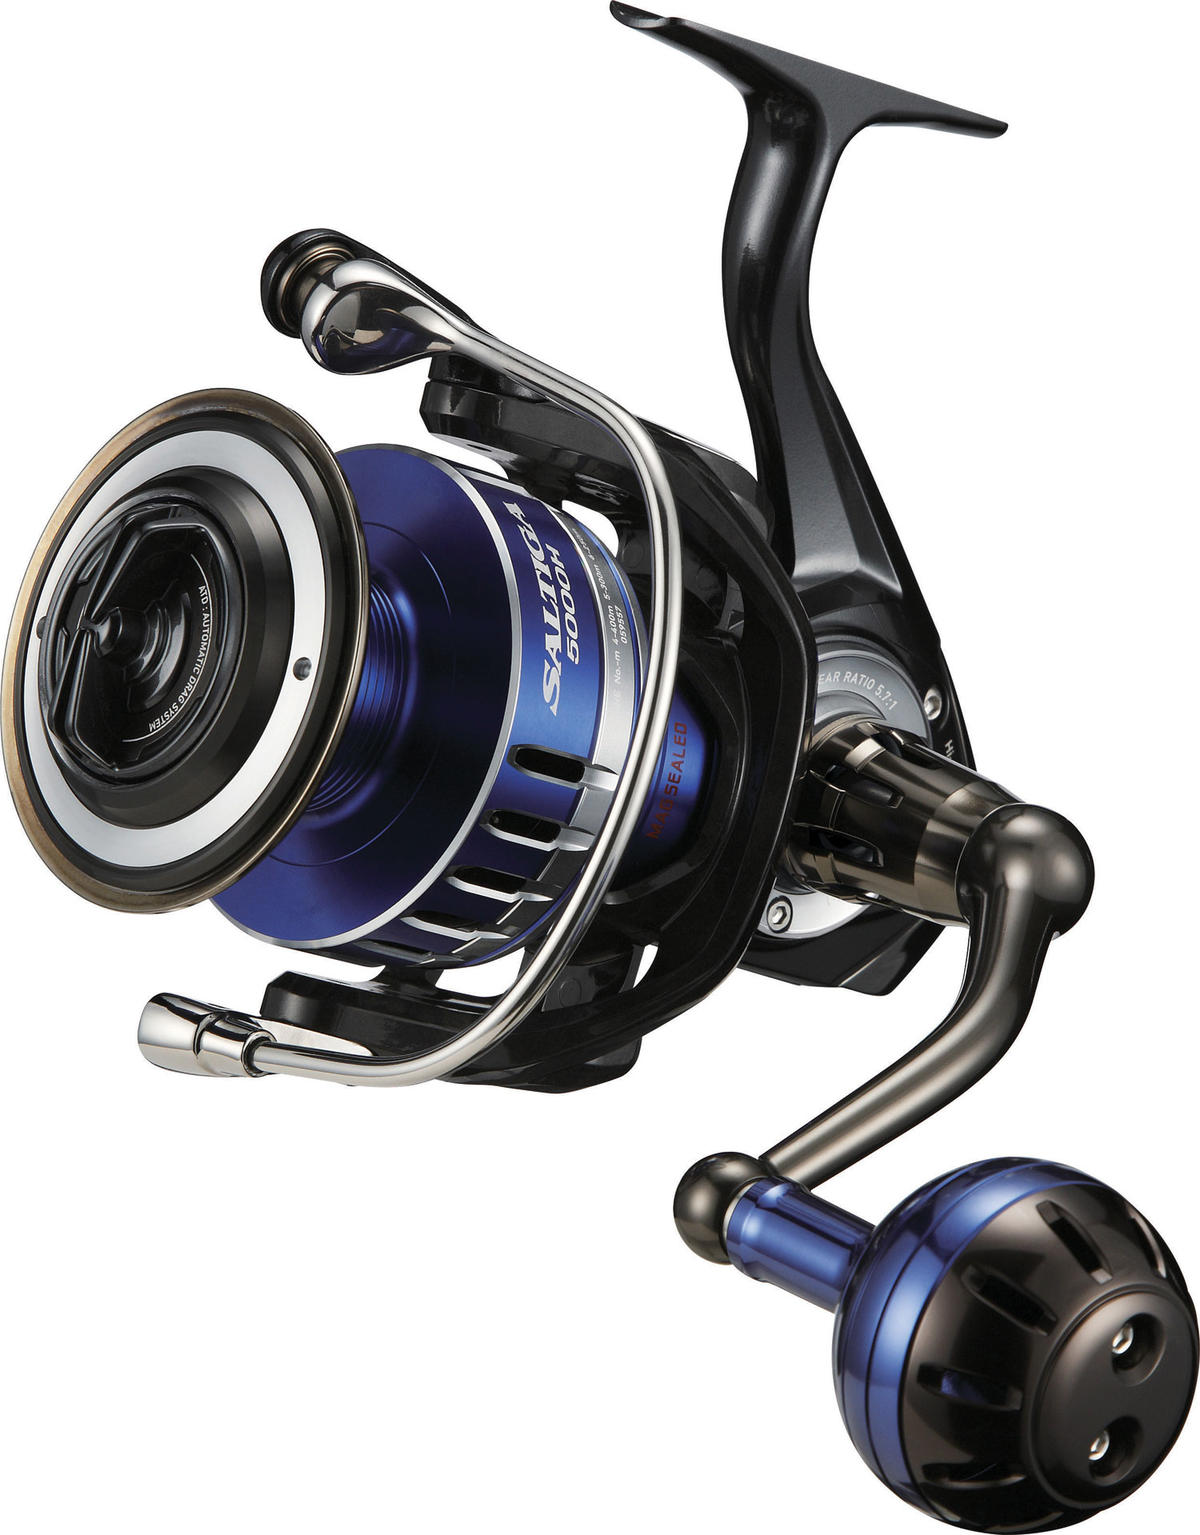 Special Clearance Offer Daiwa 15 Saltiga 4500H Mag Sealed Spinning Reel